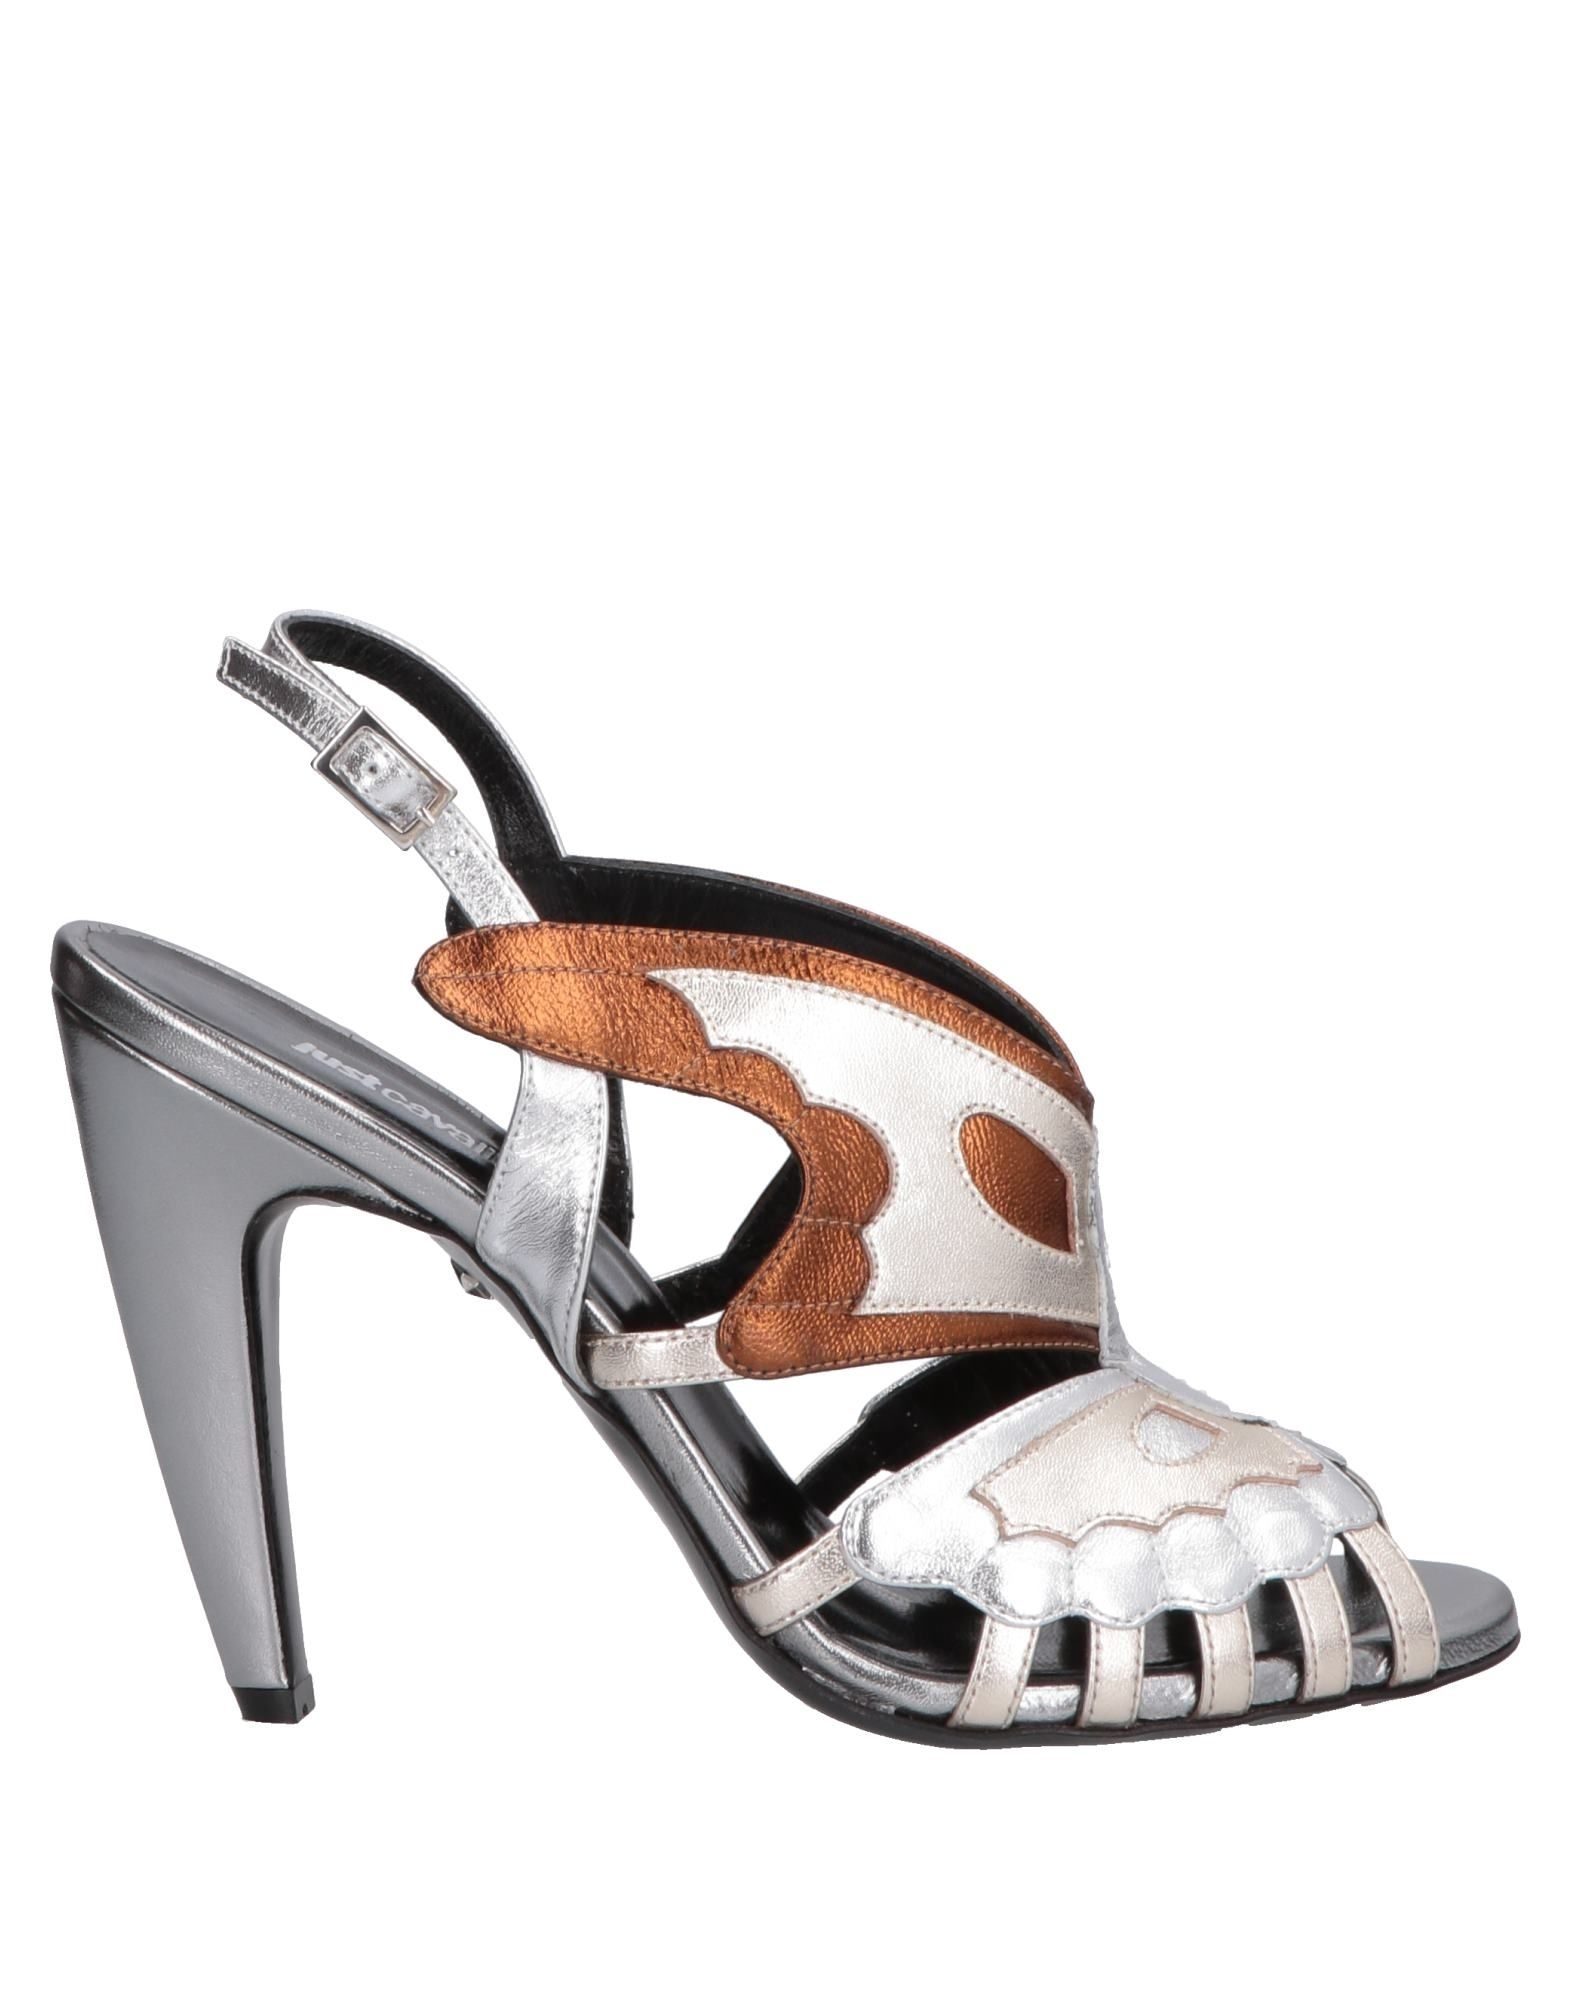 Just Cavalli Cavalli Sandals - Women Just Cavalli Cavalli Sandals online on  Canada - 11573267JV 3ba71c